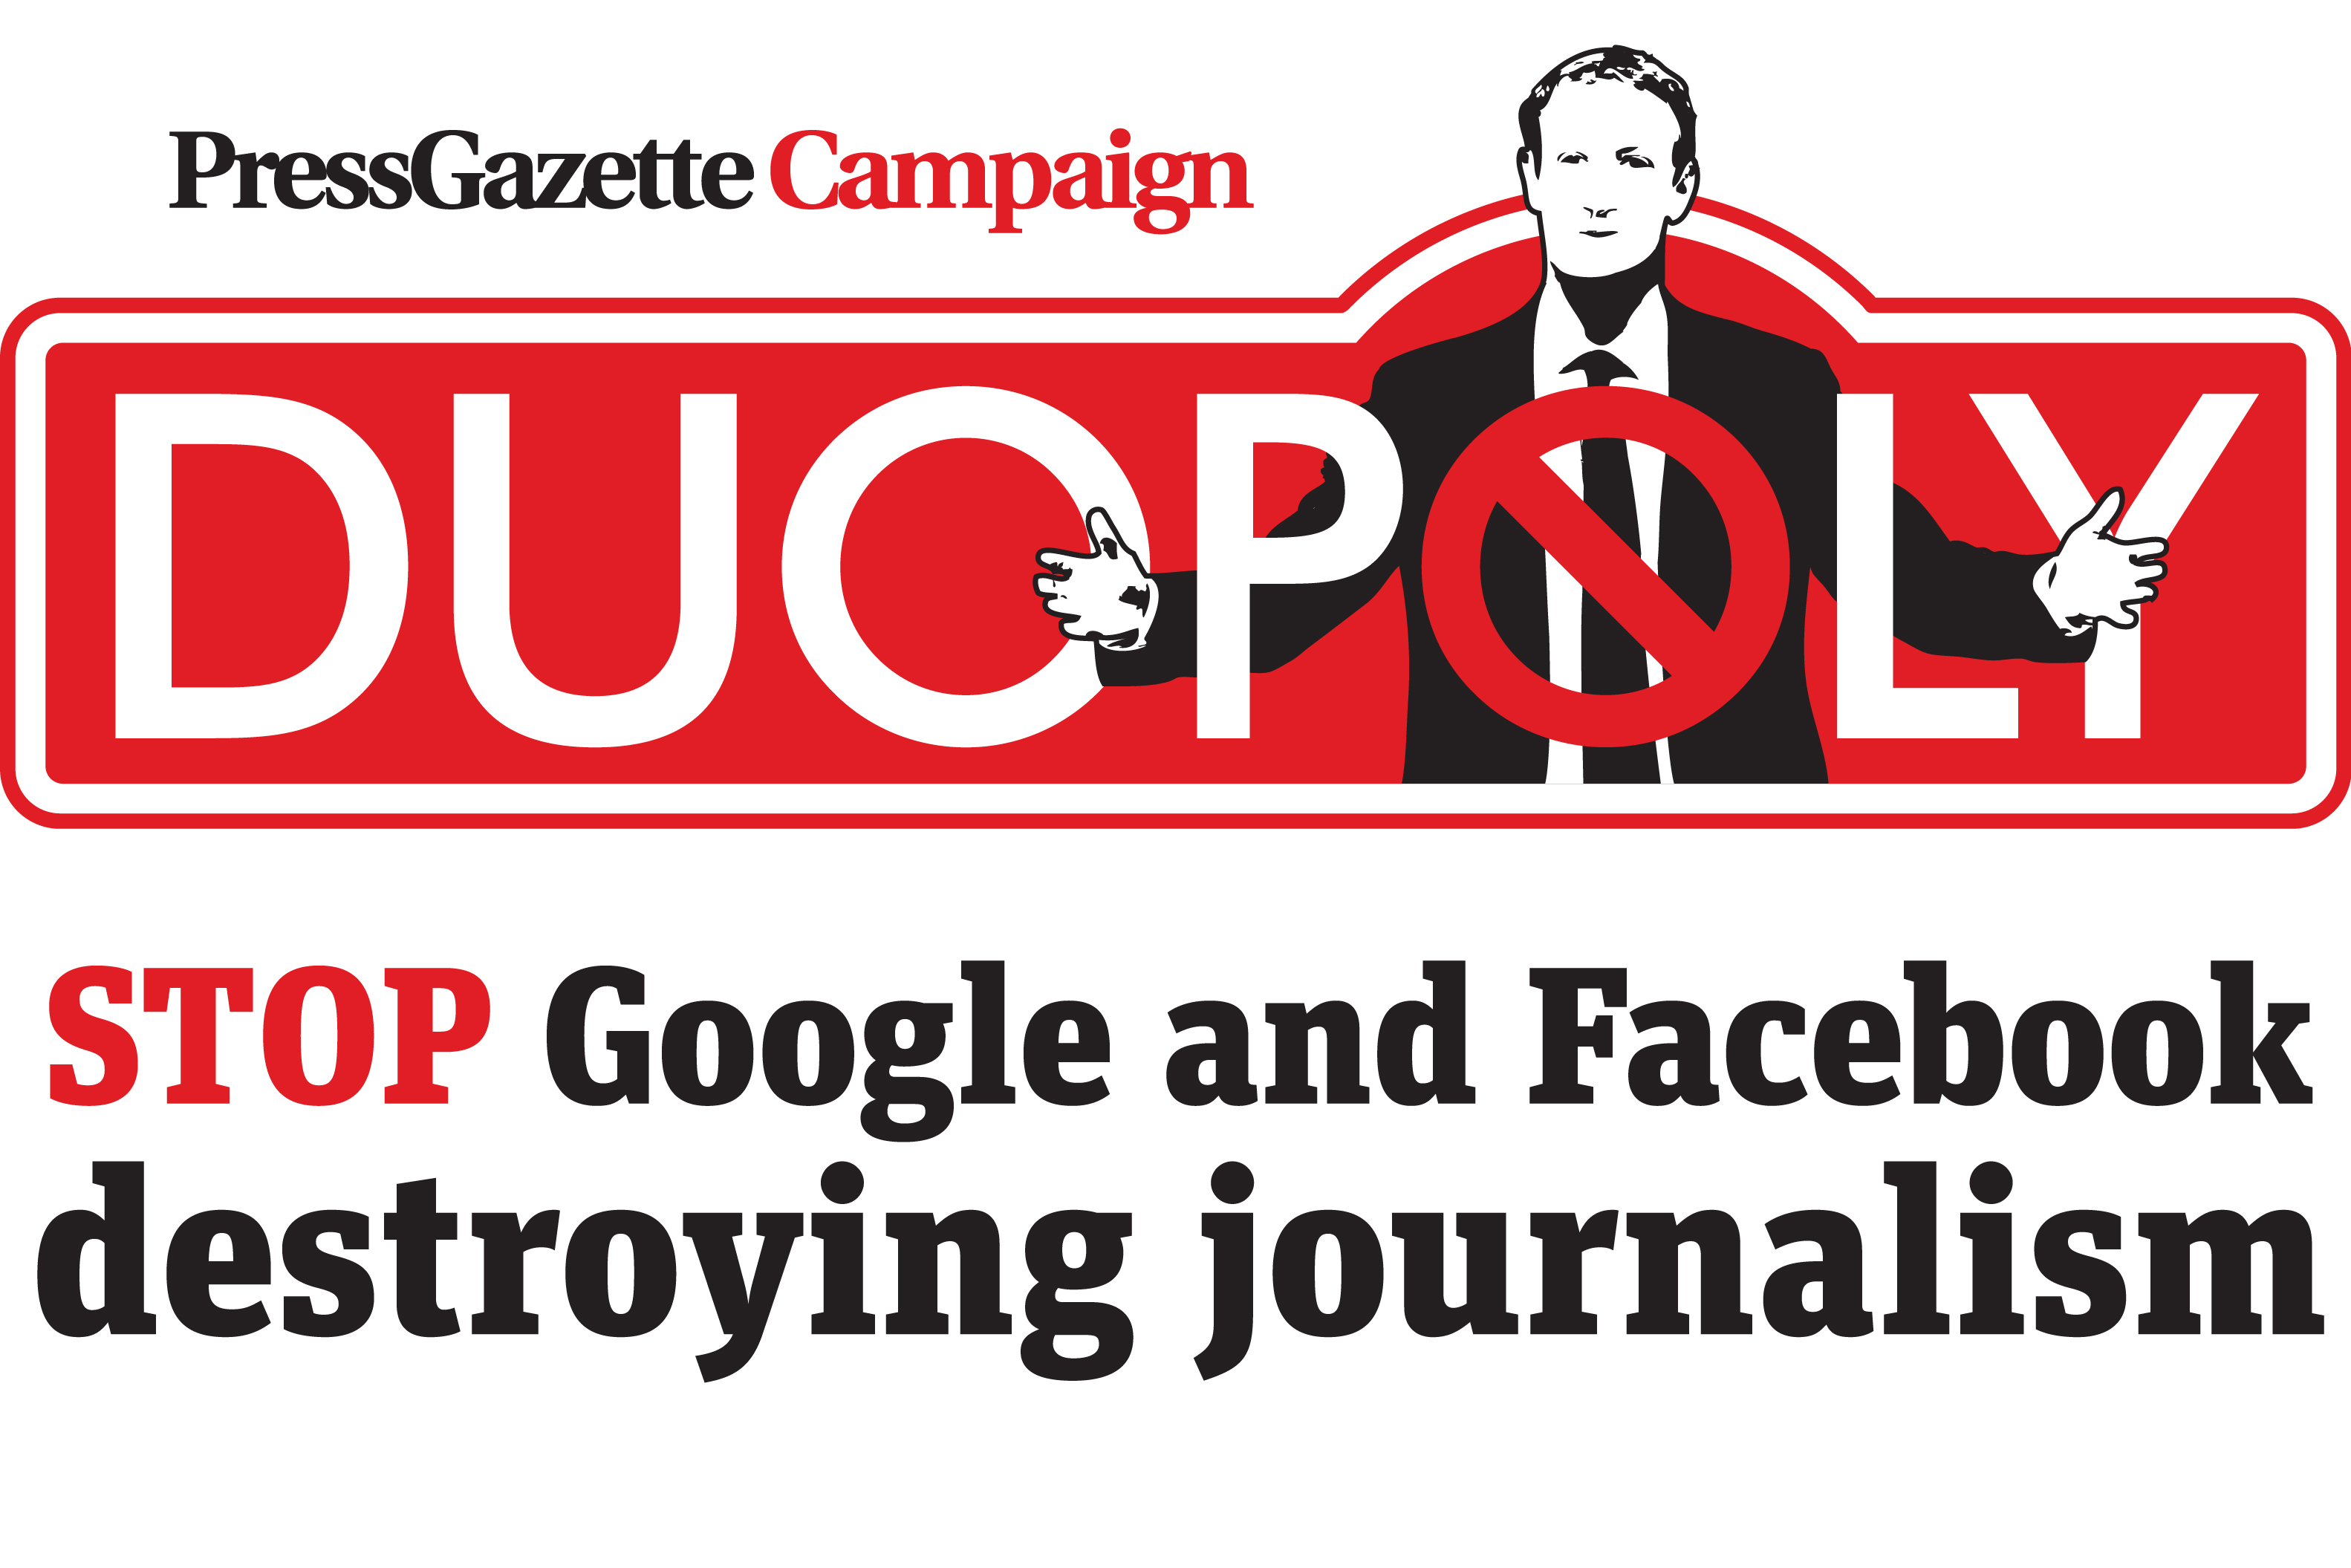 Facebook and Google can dictate terms to publishers - yet